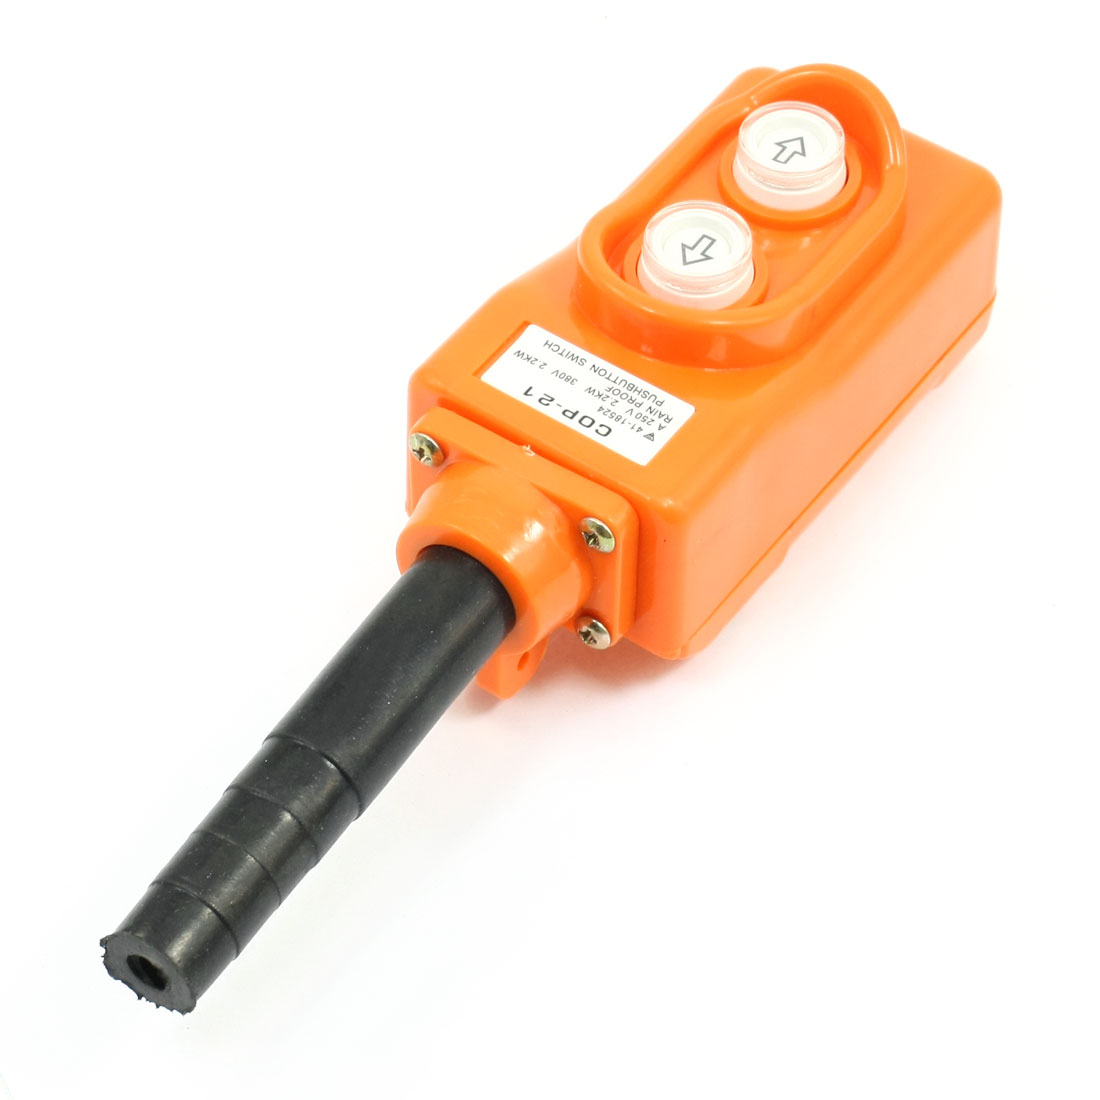 Up-Down Rain Proof Hoist Crane Pendant Pushbutton Switch